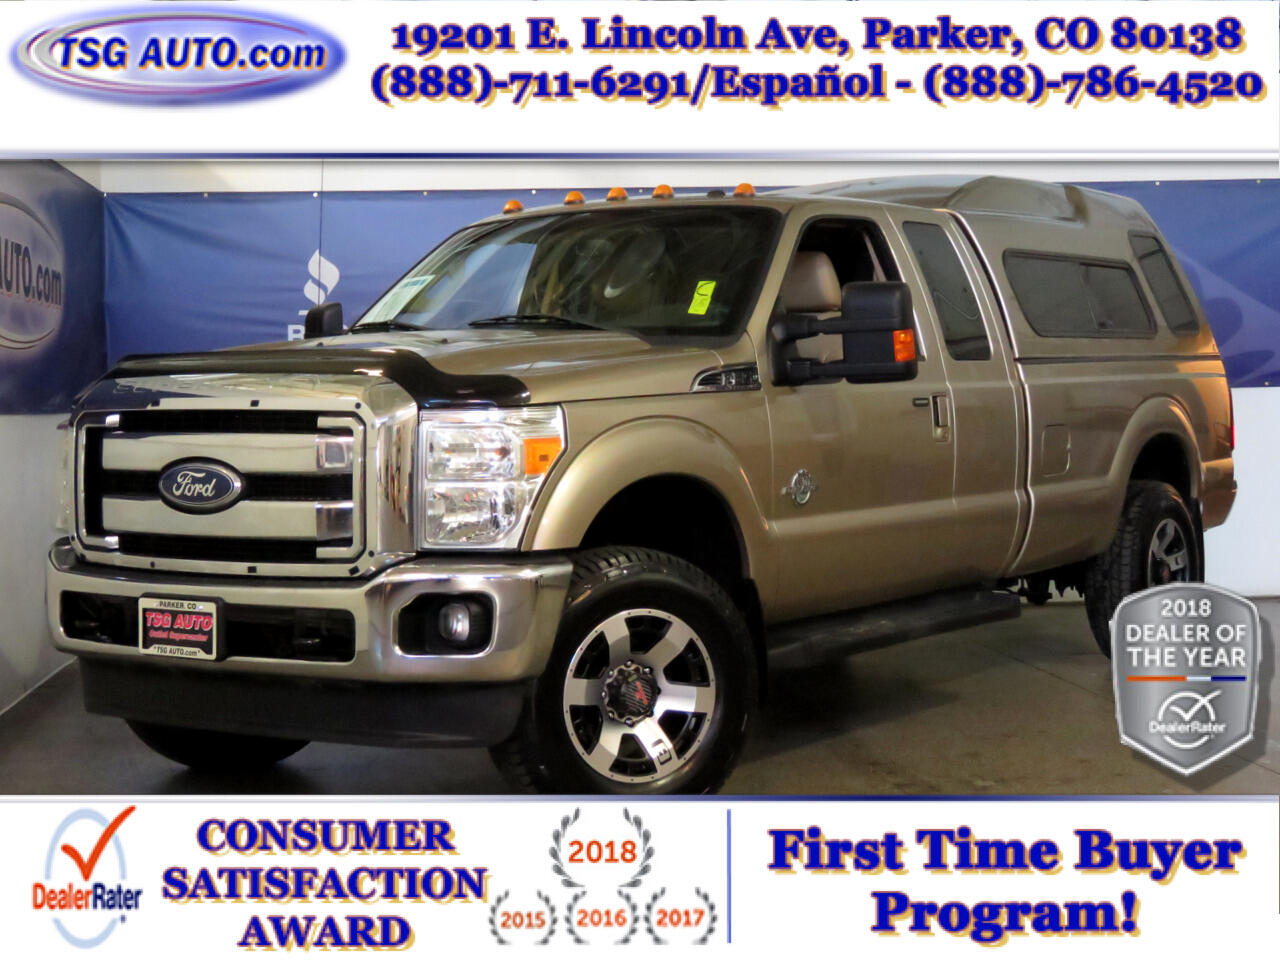 2011 Ford Super Duty F-250 SRW Lariat Super Cab 6.7L V8 4WD W/Topper